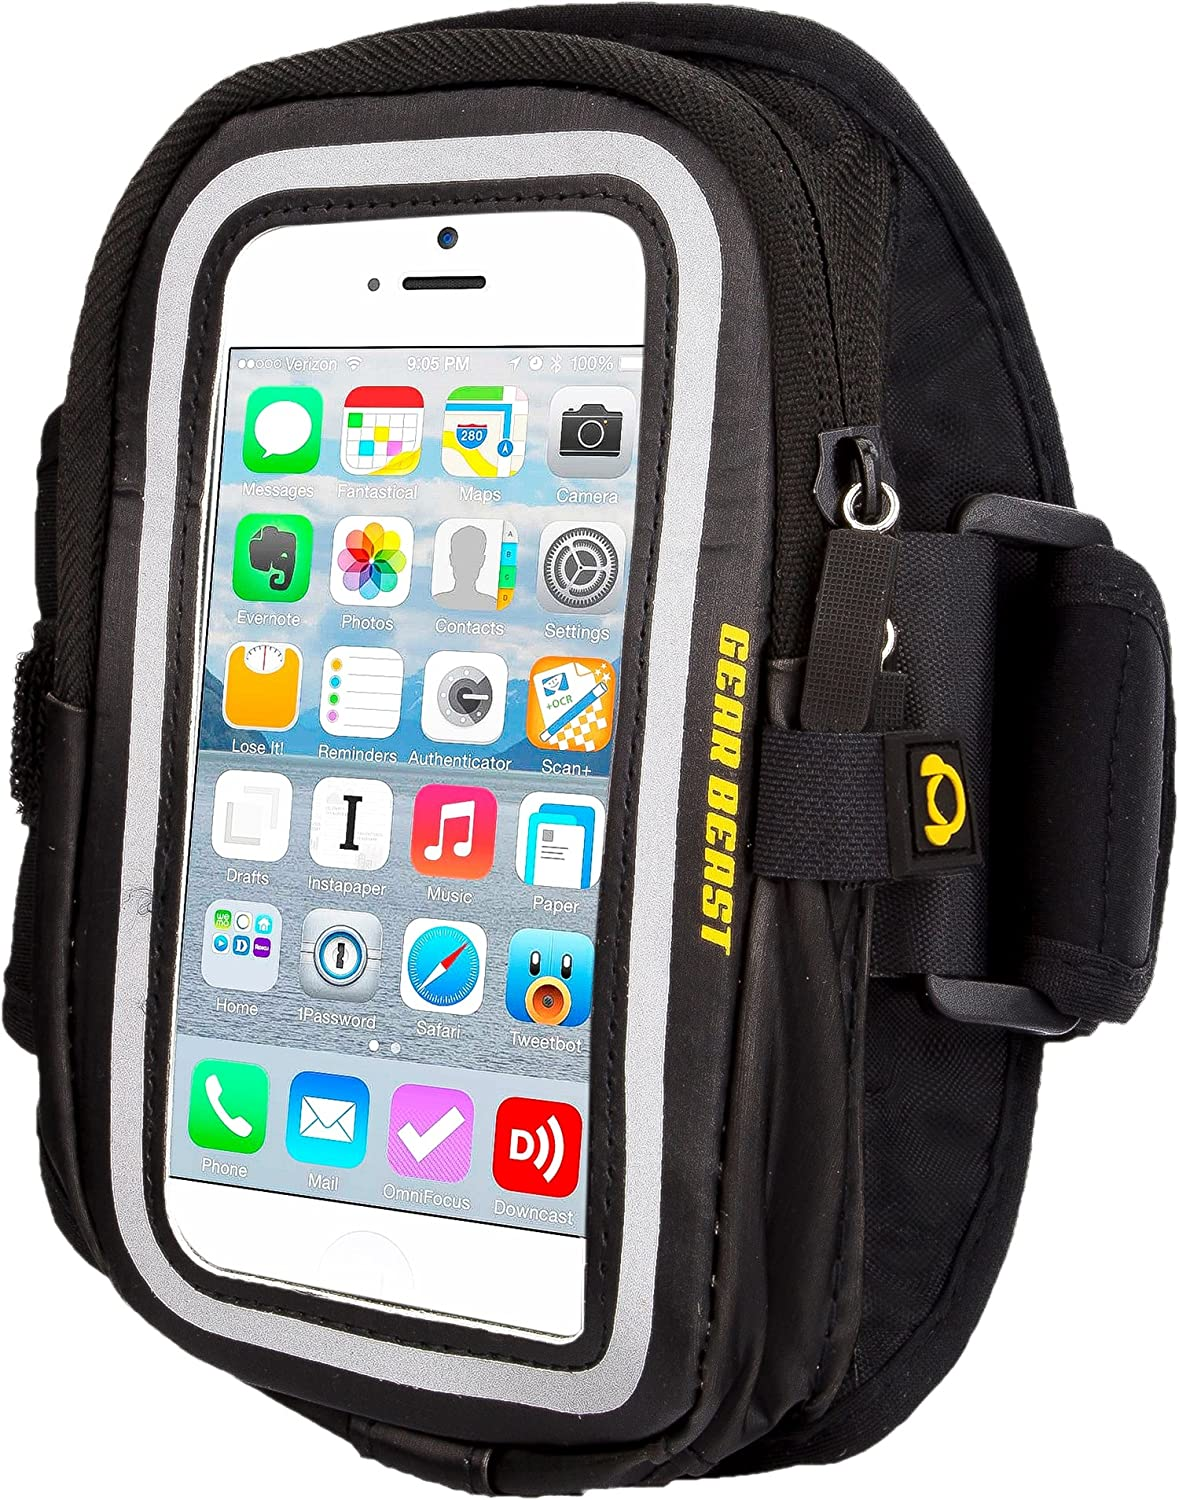 Gear Beast GearWallet iPhone 7 Sports Armband for Running, Workout, Compatible w/ Otterbox Type Cases, Large Capacity Storage Pocket, 4 Card Slots, Keys, Earbuds Also fits Phone 6S, 6 & More Gear Sports Wallet - Ip7